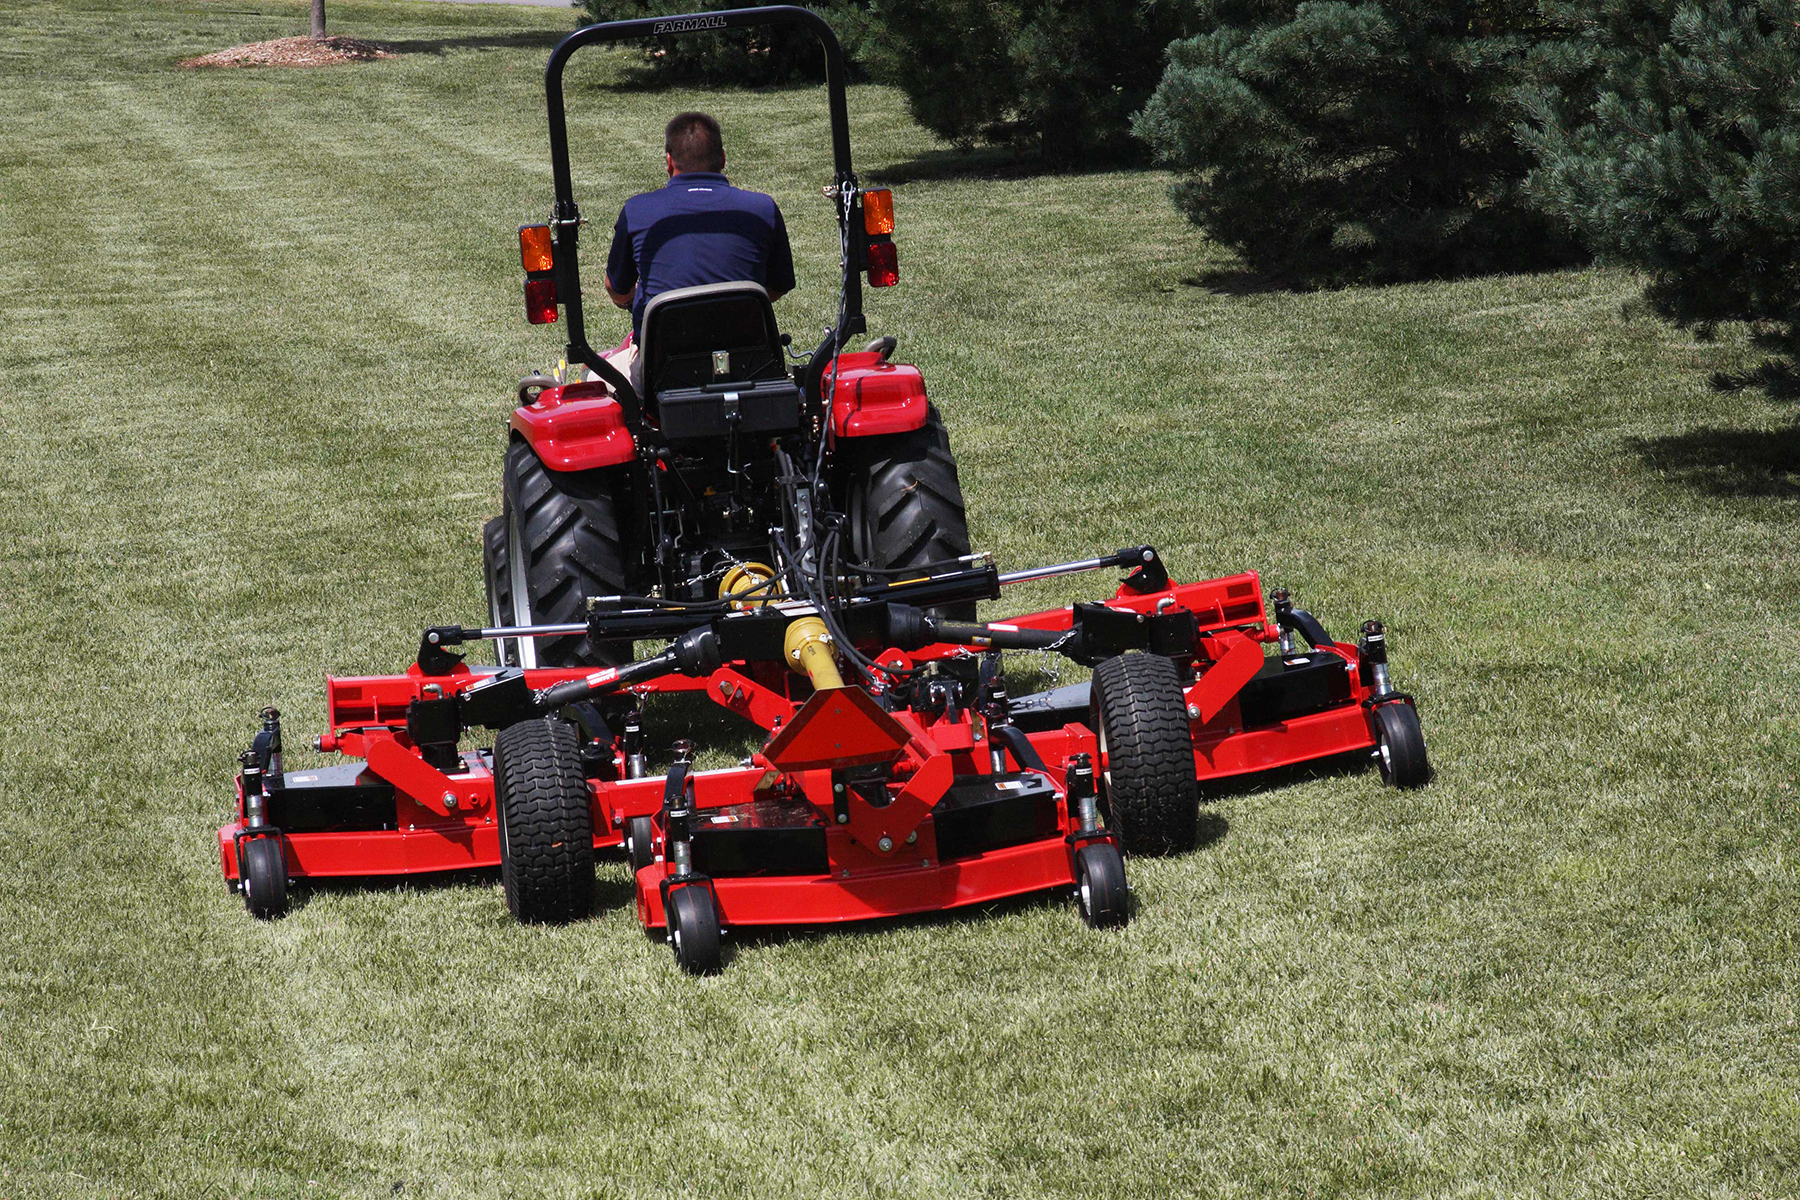 Commercial Lawn Mowers : Services burns full service small engine repair auto